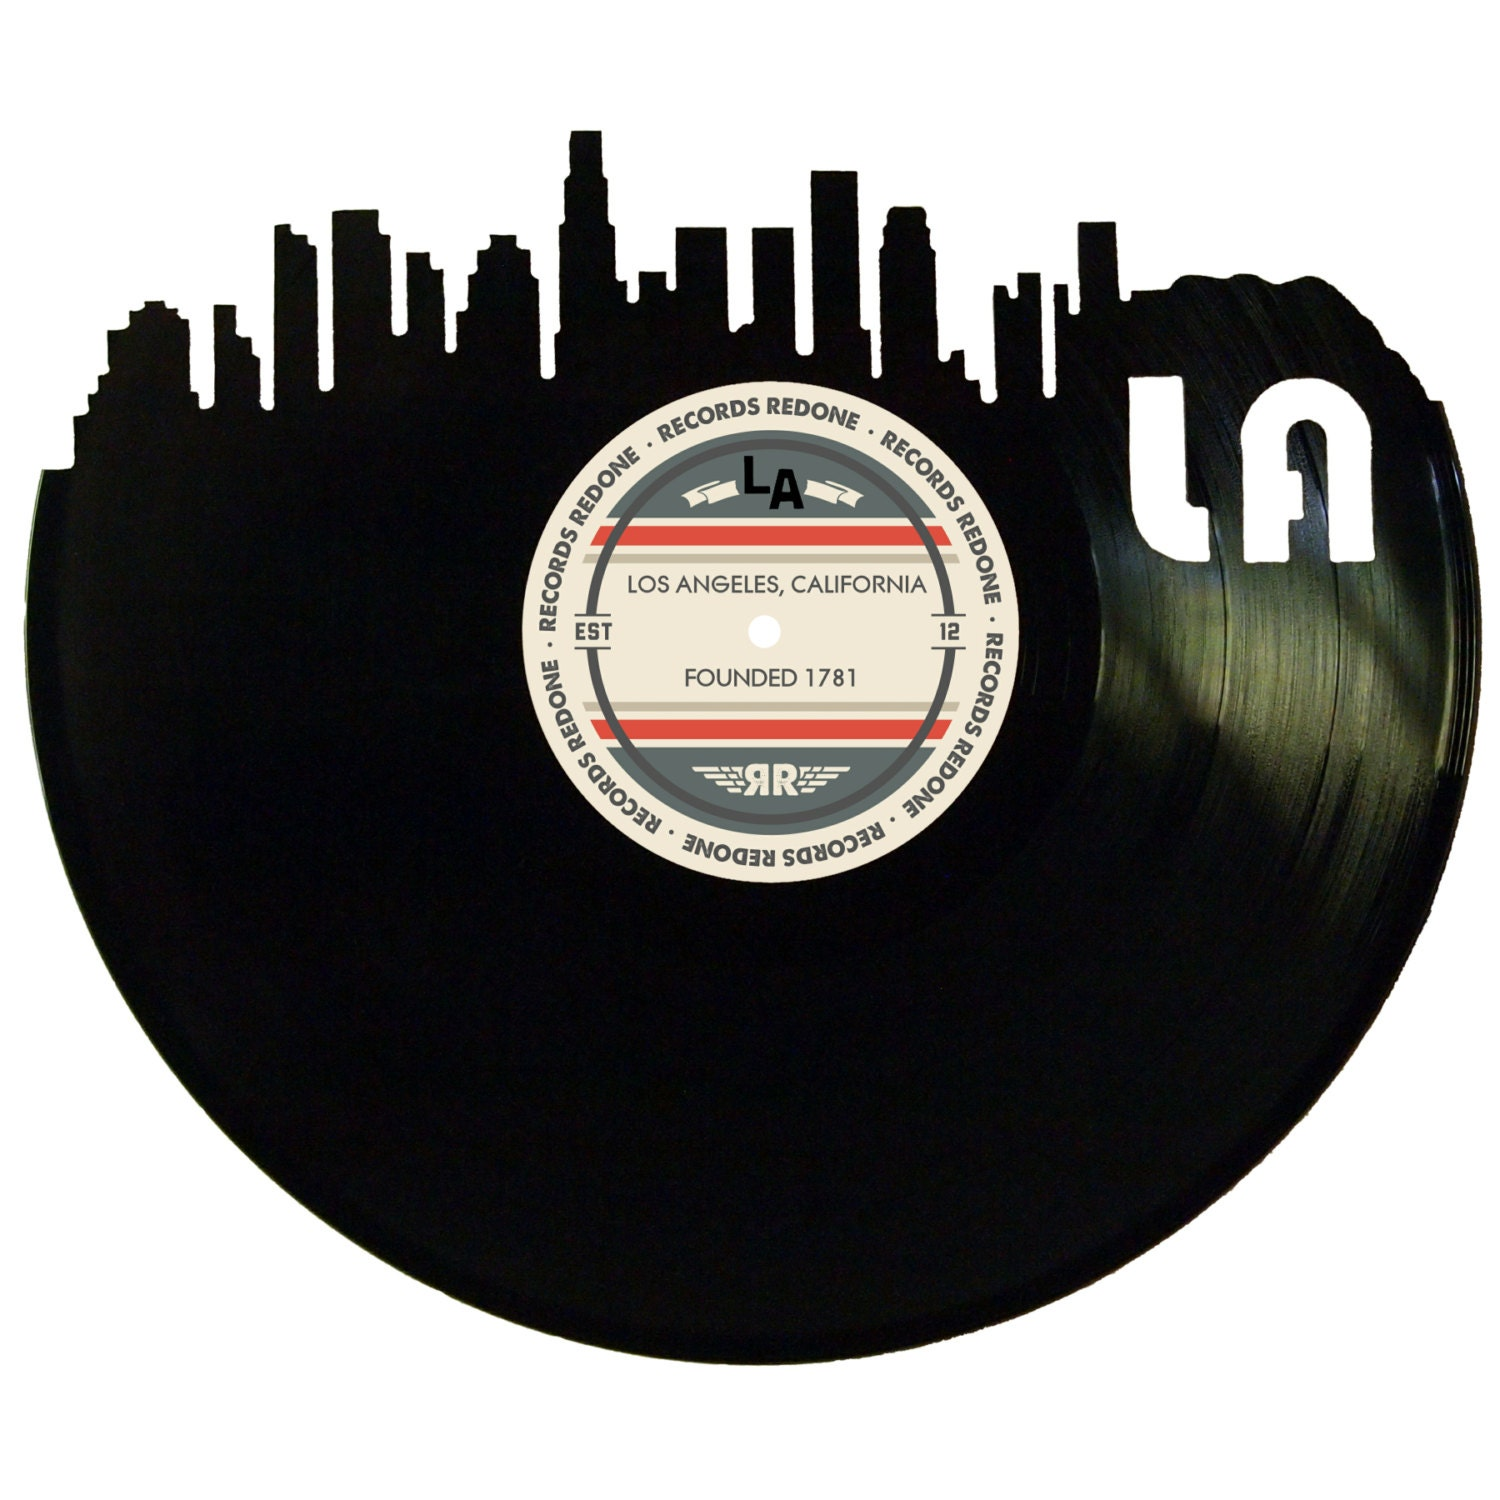 Los angeles skyline records redone label vinyl record wall art for Vinyl record wall art